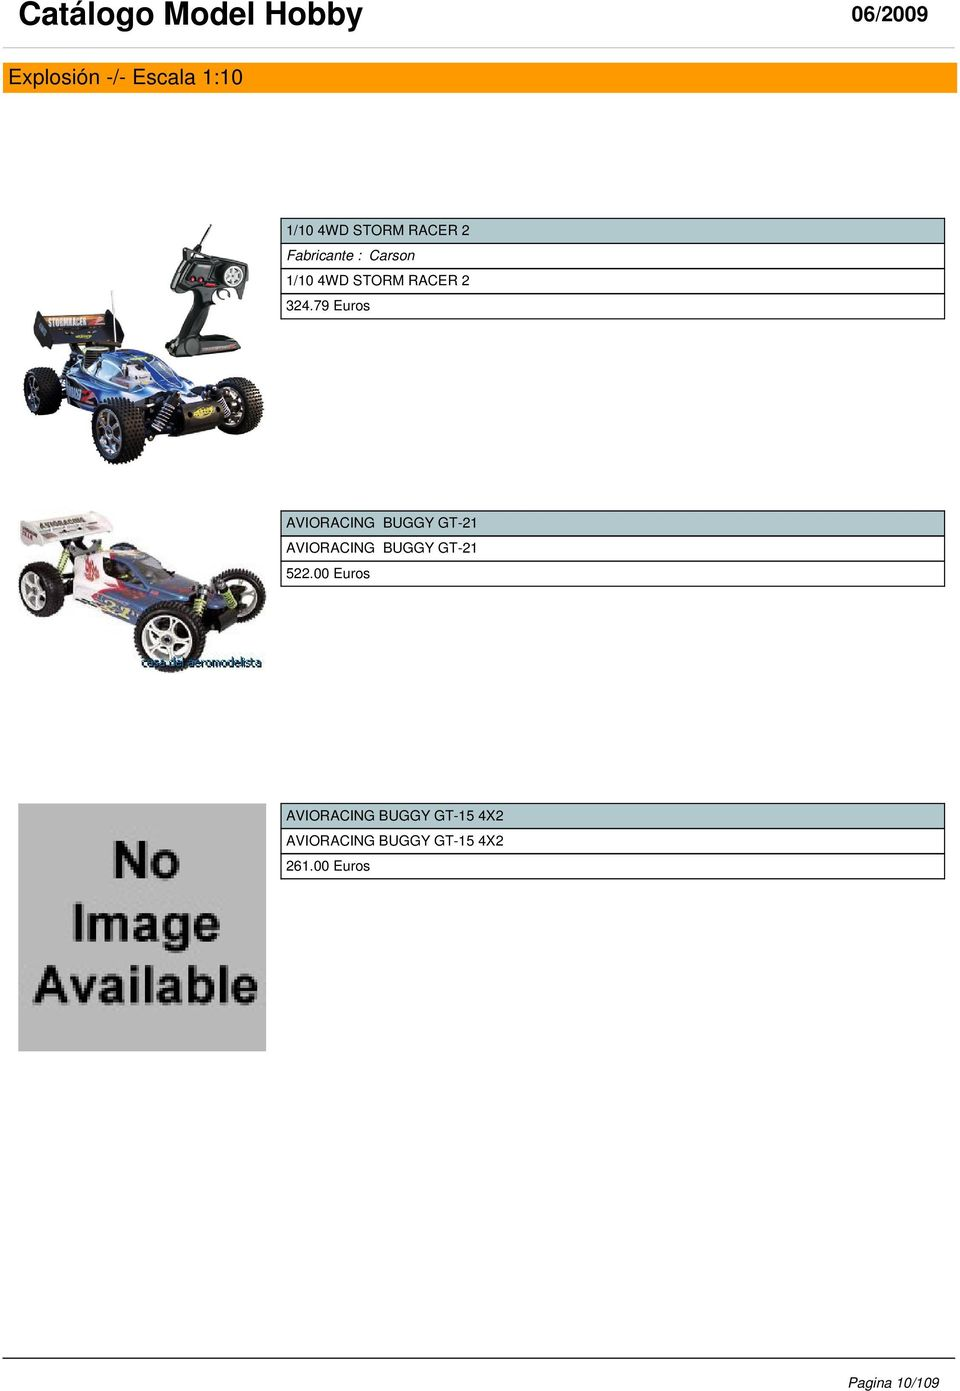 79 Euros AVIORACING BUGGY GT-21 AVIORACING BUGGY GT-21 522.